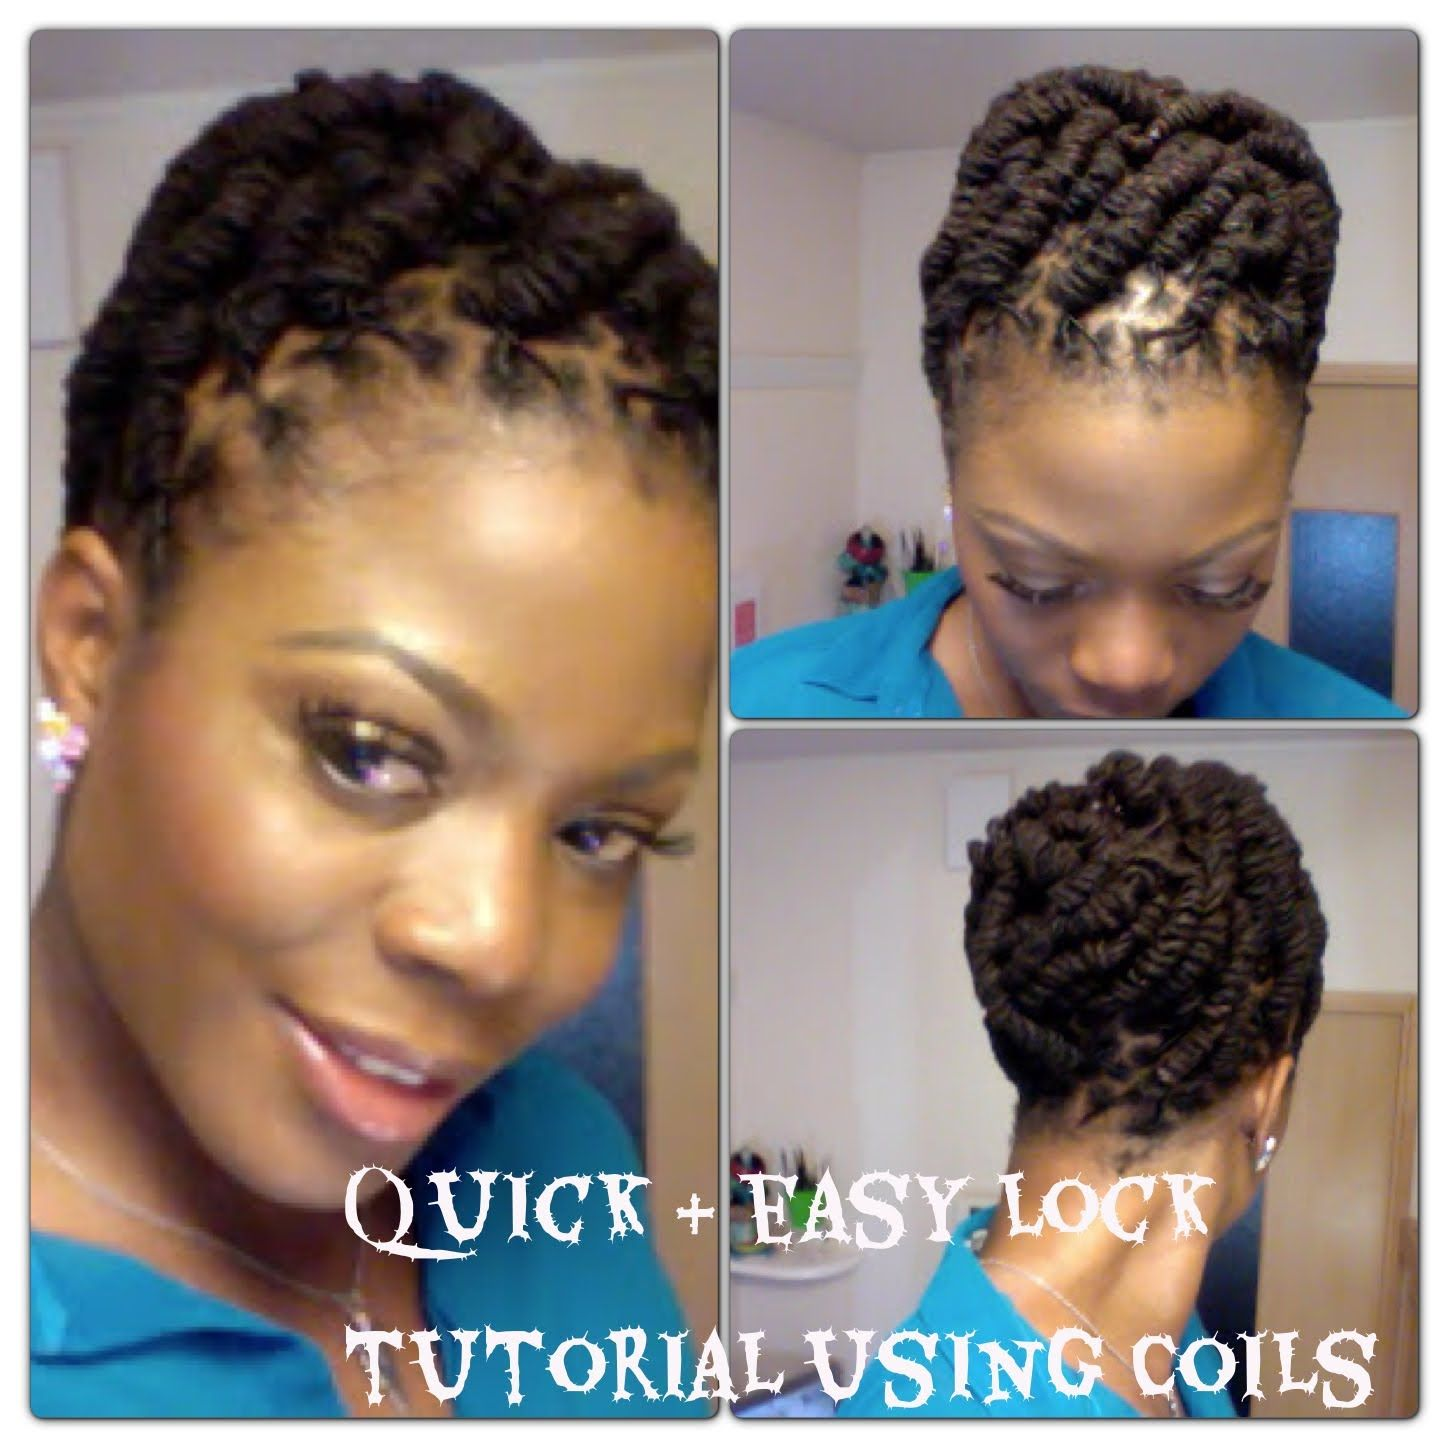 Simple And Quick Lock Hairstyle Using Coils Unique Wedding Hairstyles Hair Locks Hair Styles